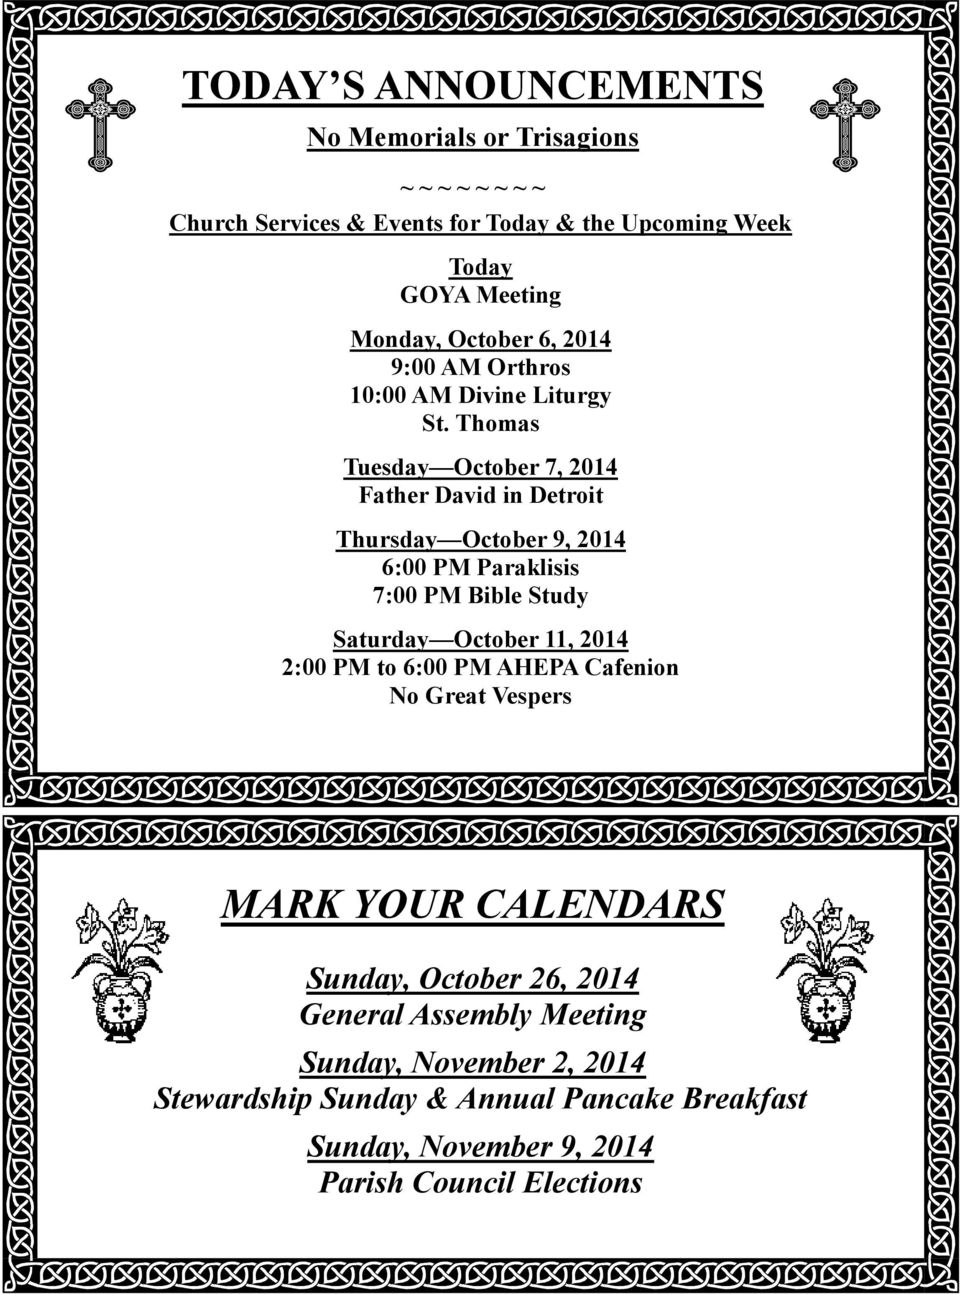 Thomas Tuesday October 7, 2014 Father David in Detroit Thursday October 9, 2014 6:00 PM Paraklisis 7:00 PM Bible Study Saturday October 11, 2014